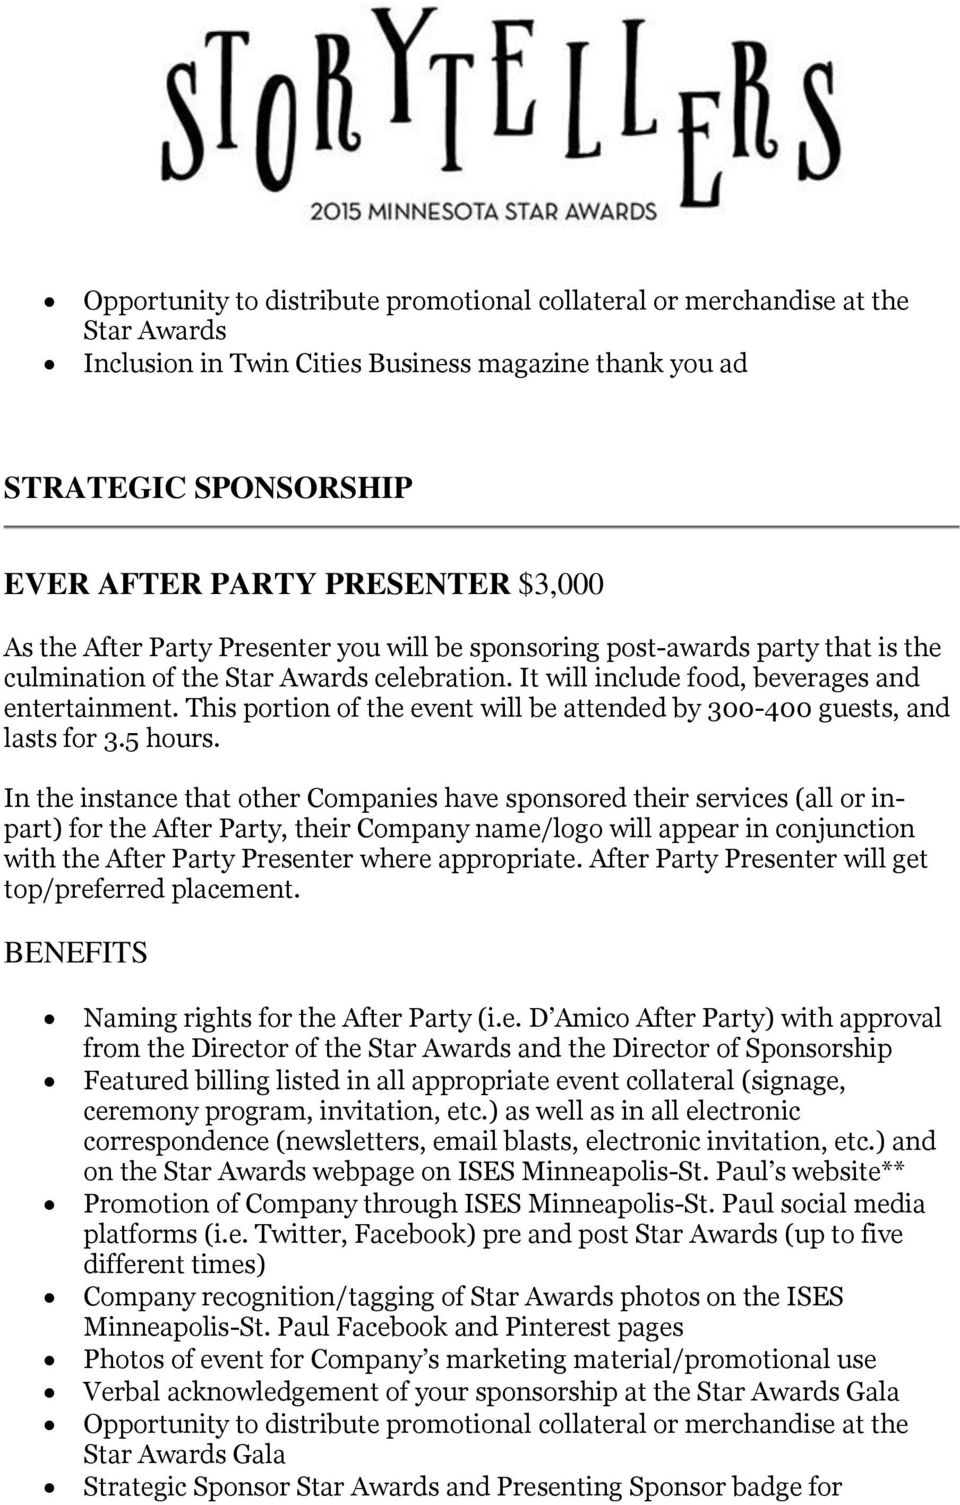 In the instance that other Companies have sponsored their services (all or inpart) for the After Party, their Company name/logo will appear in conjunction with the After Party Presenter where